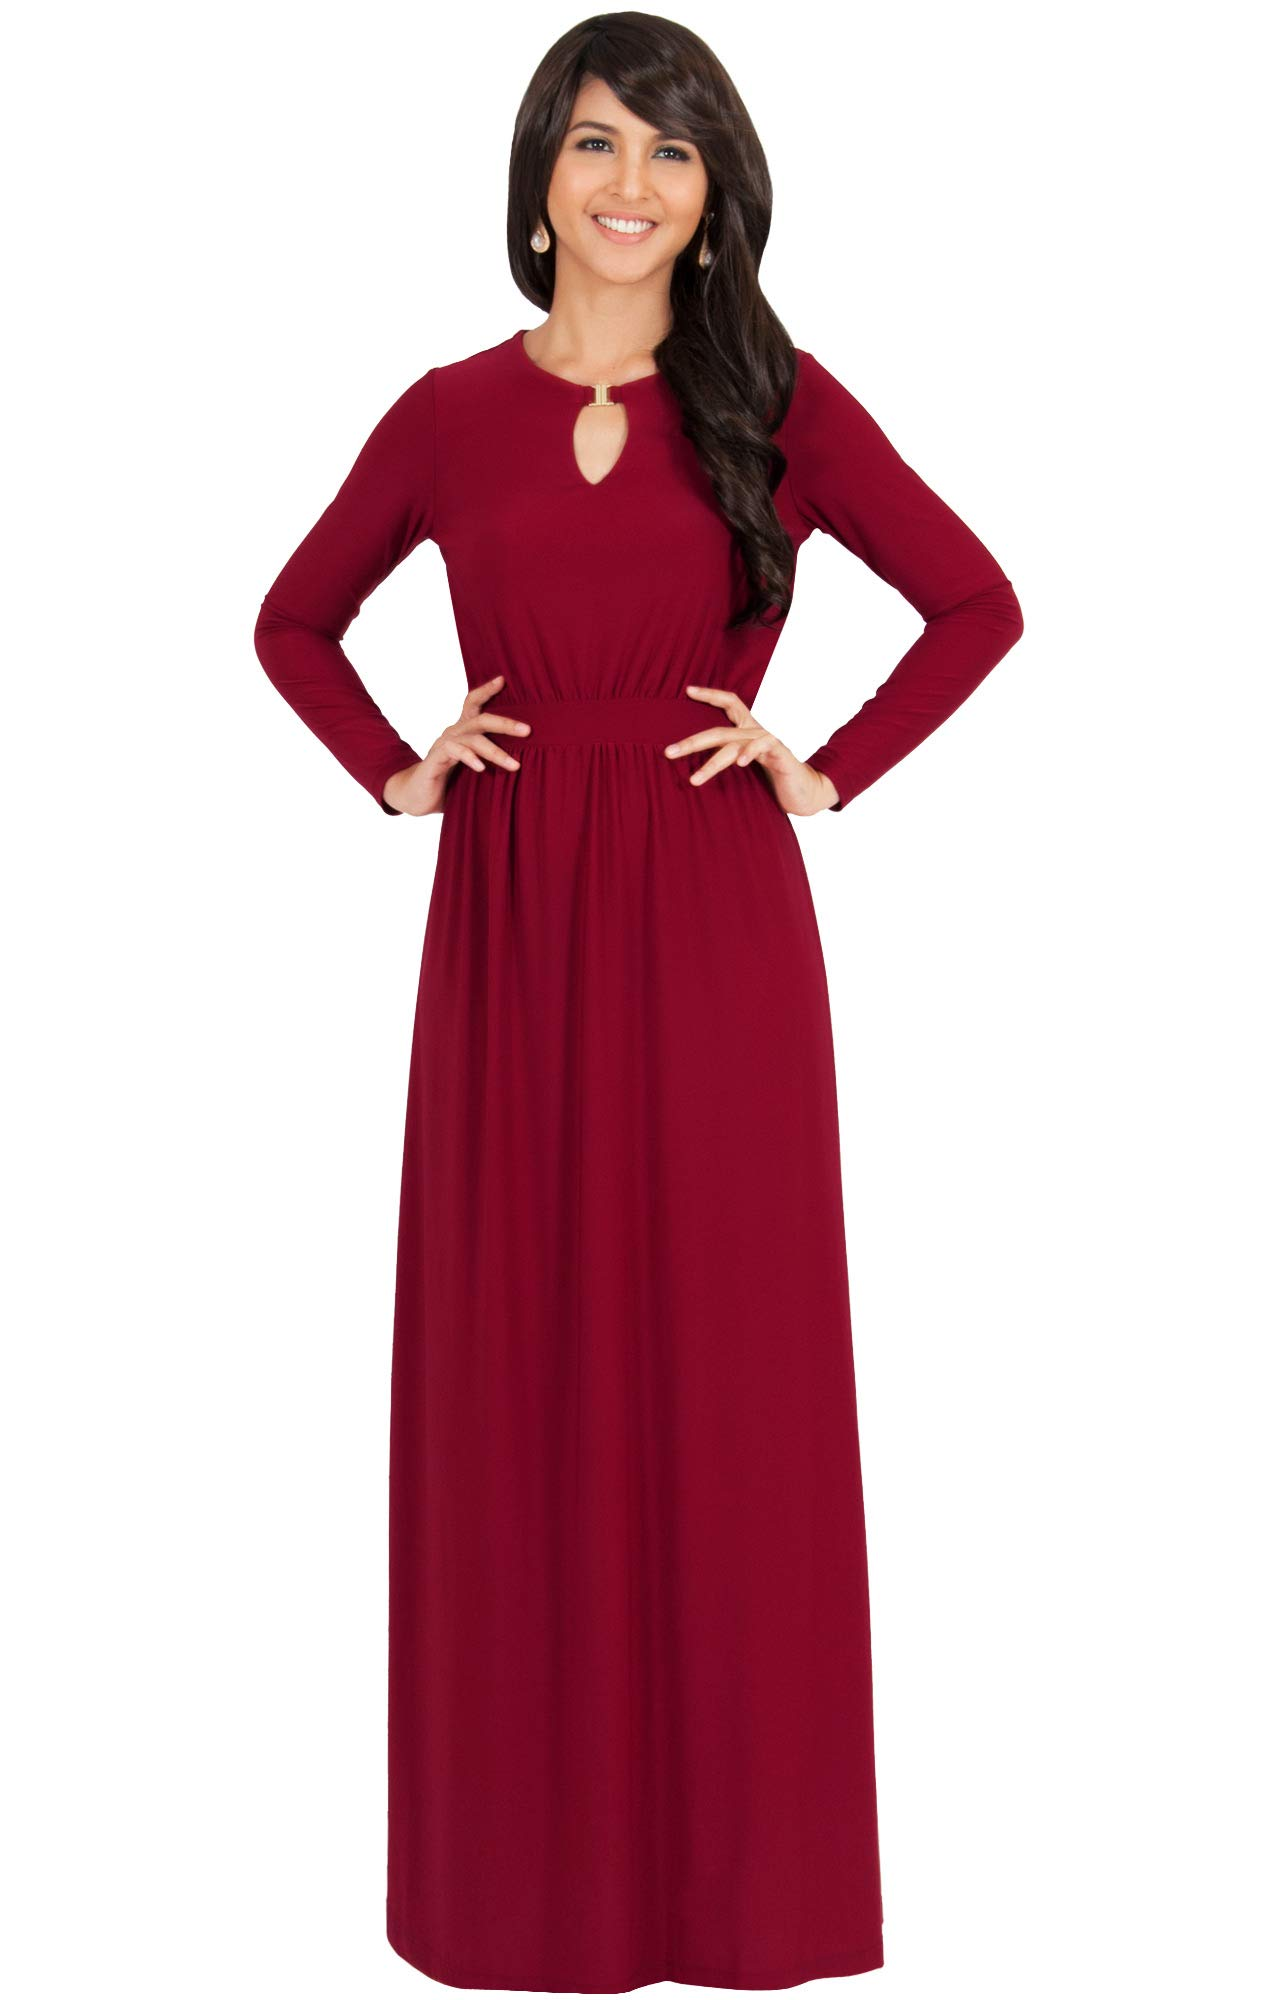 fbf9124c54 KOH KOH Sleeve Modest Flowy Summer Sexy Gown Cocktail – Shop New ...